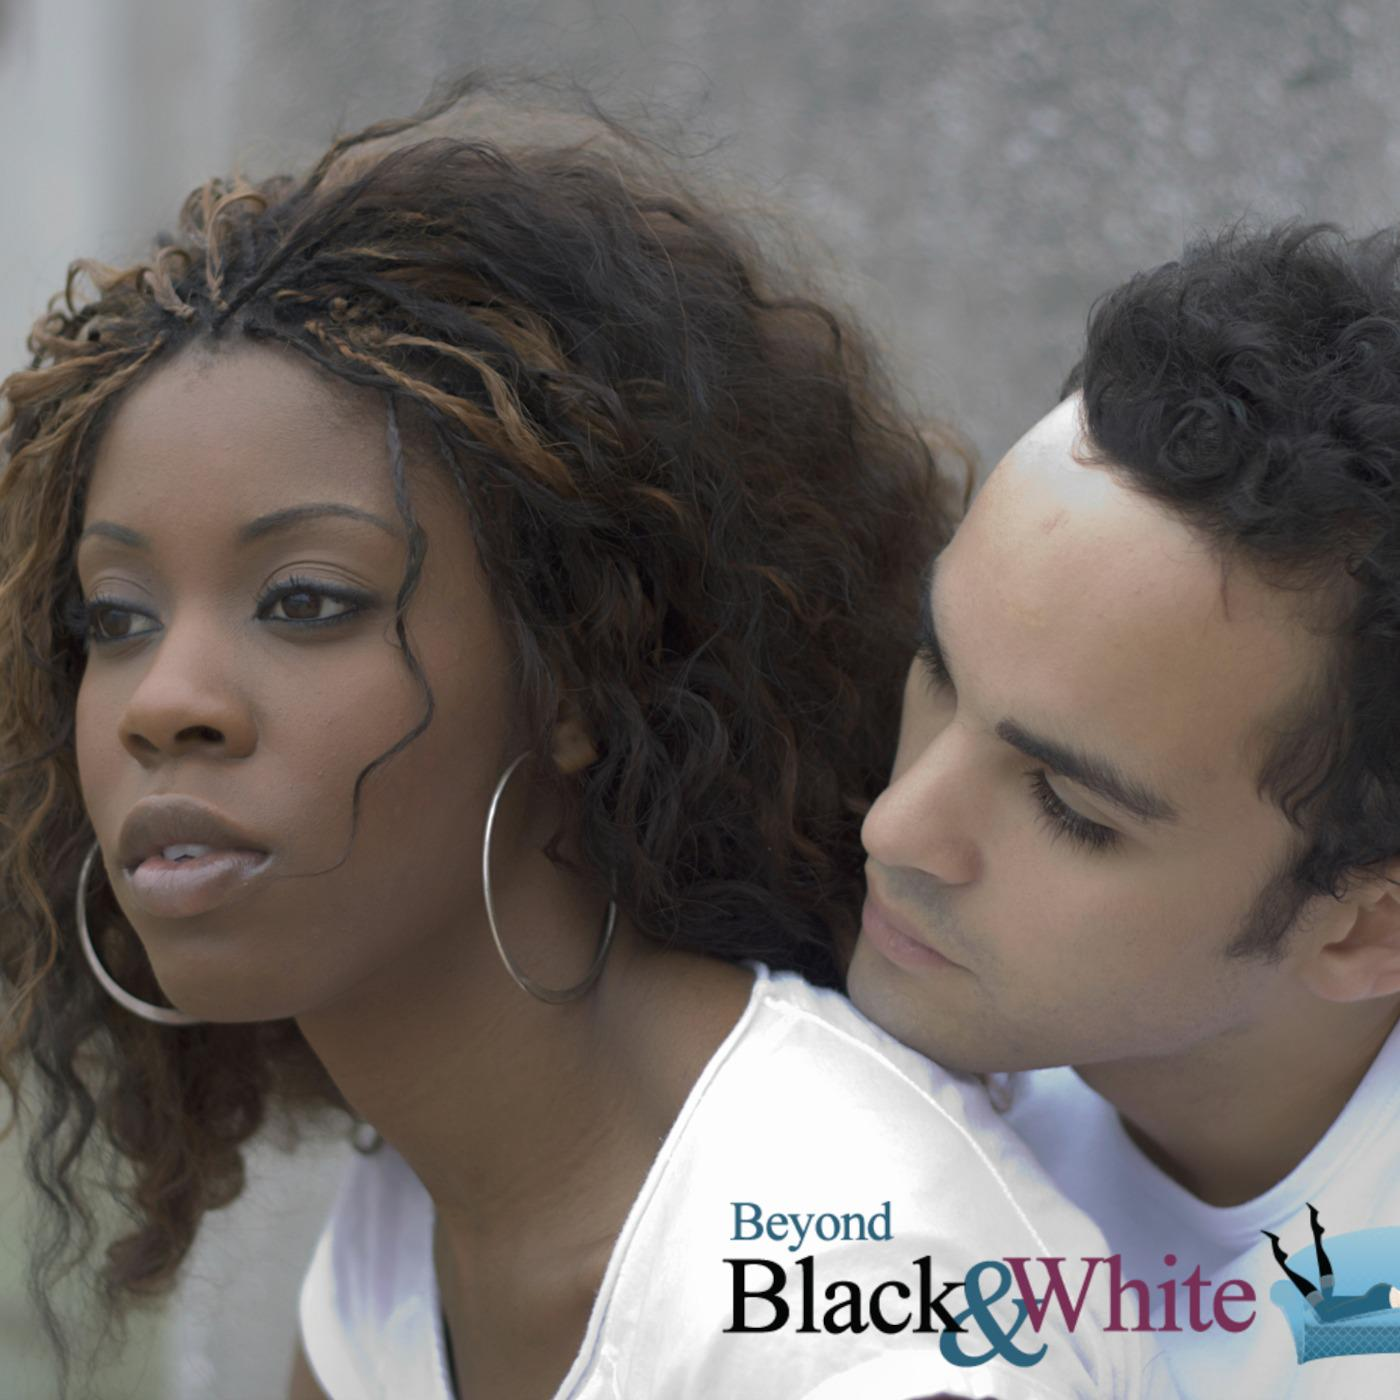 Beyond black and white dating